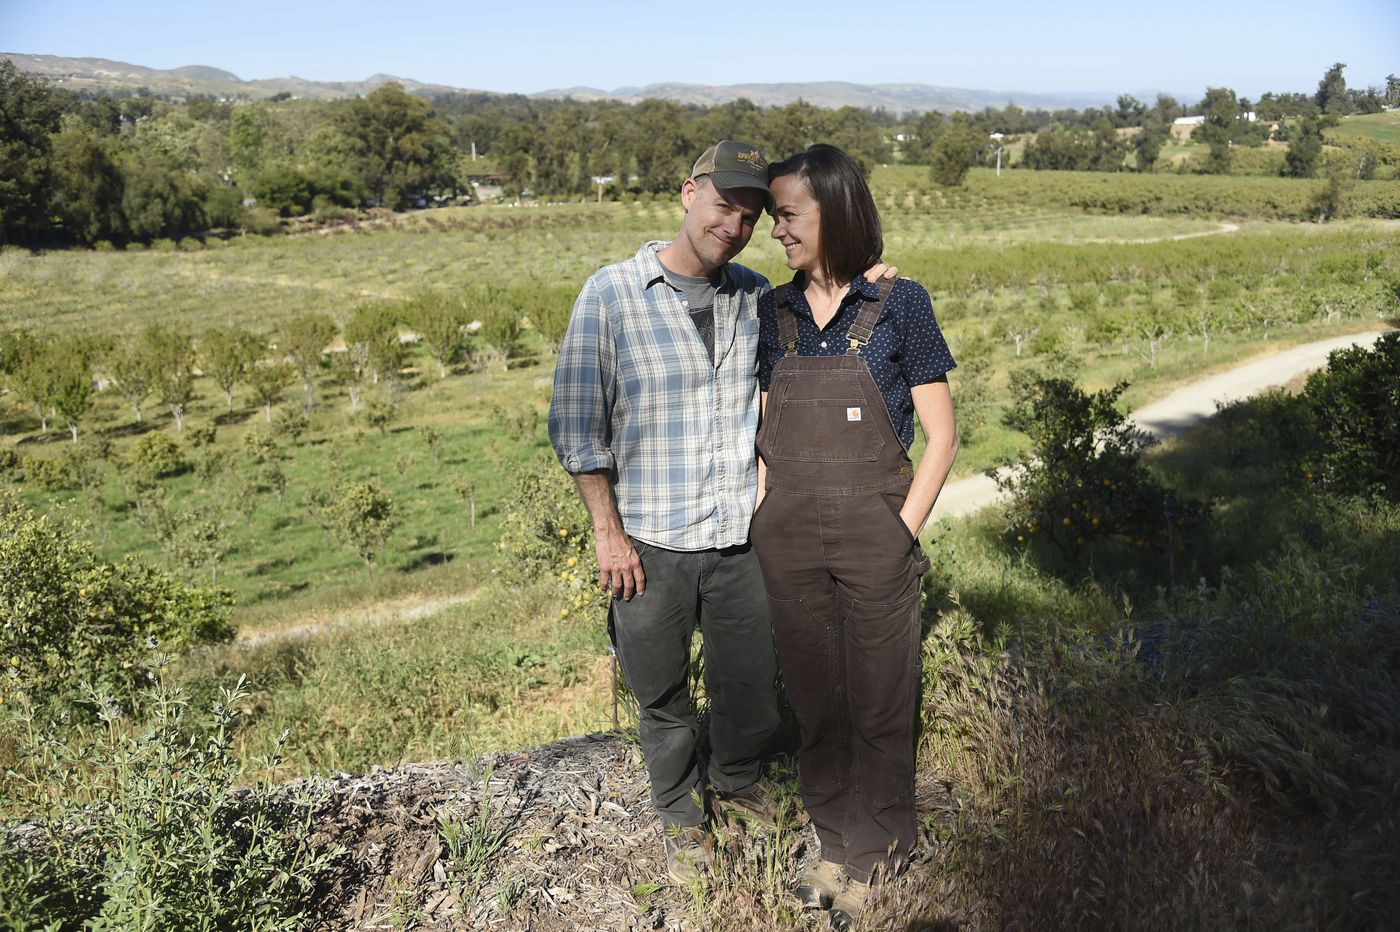 'Biggest Little Farm': This documentary on sustainable farming is not just a good watch, it's also surprisingly moving | Movie review